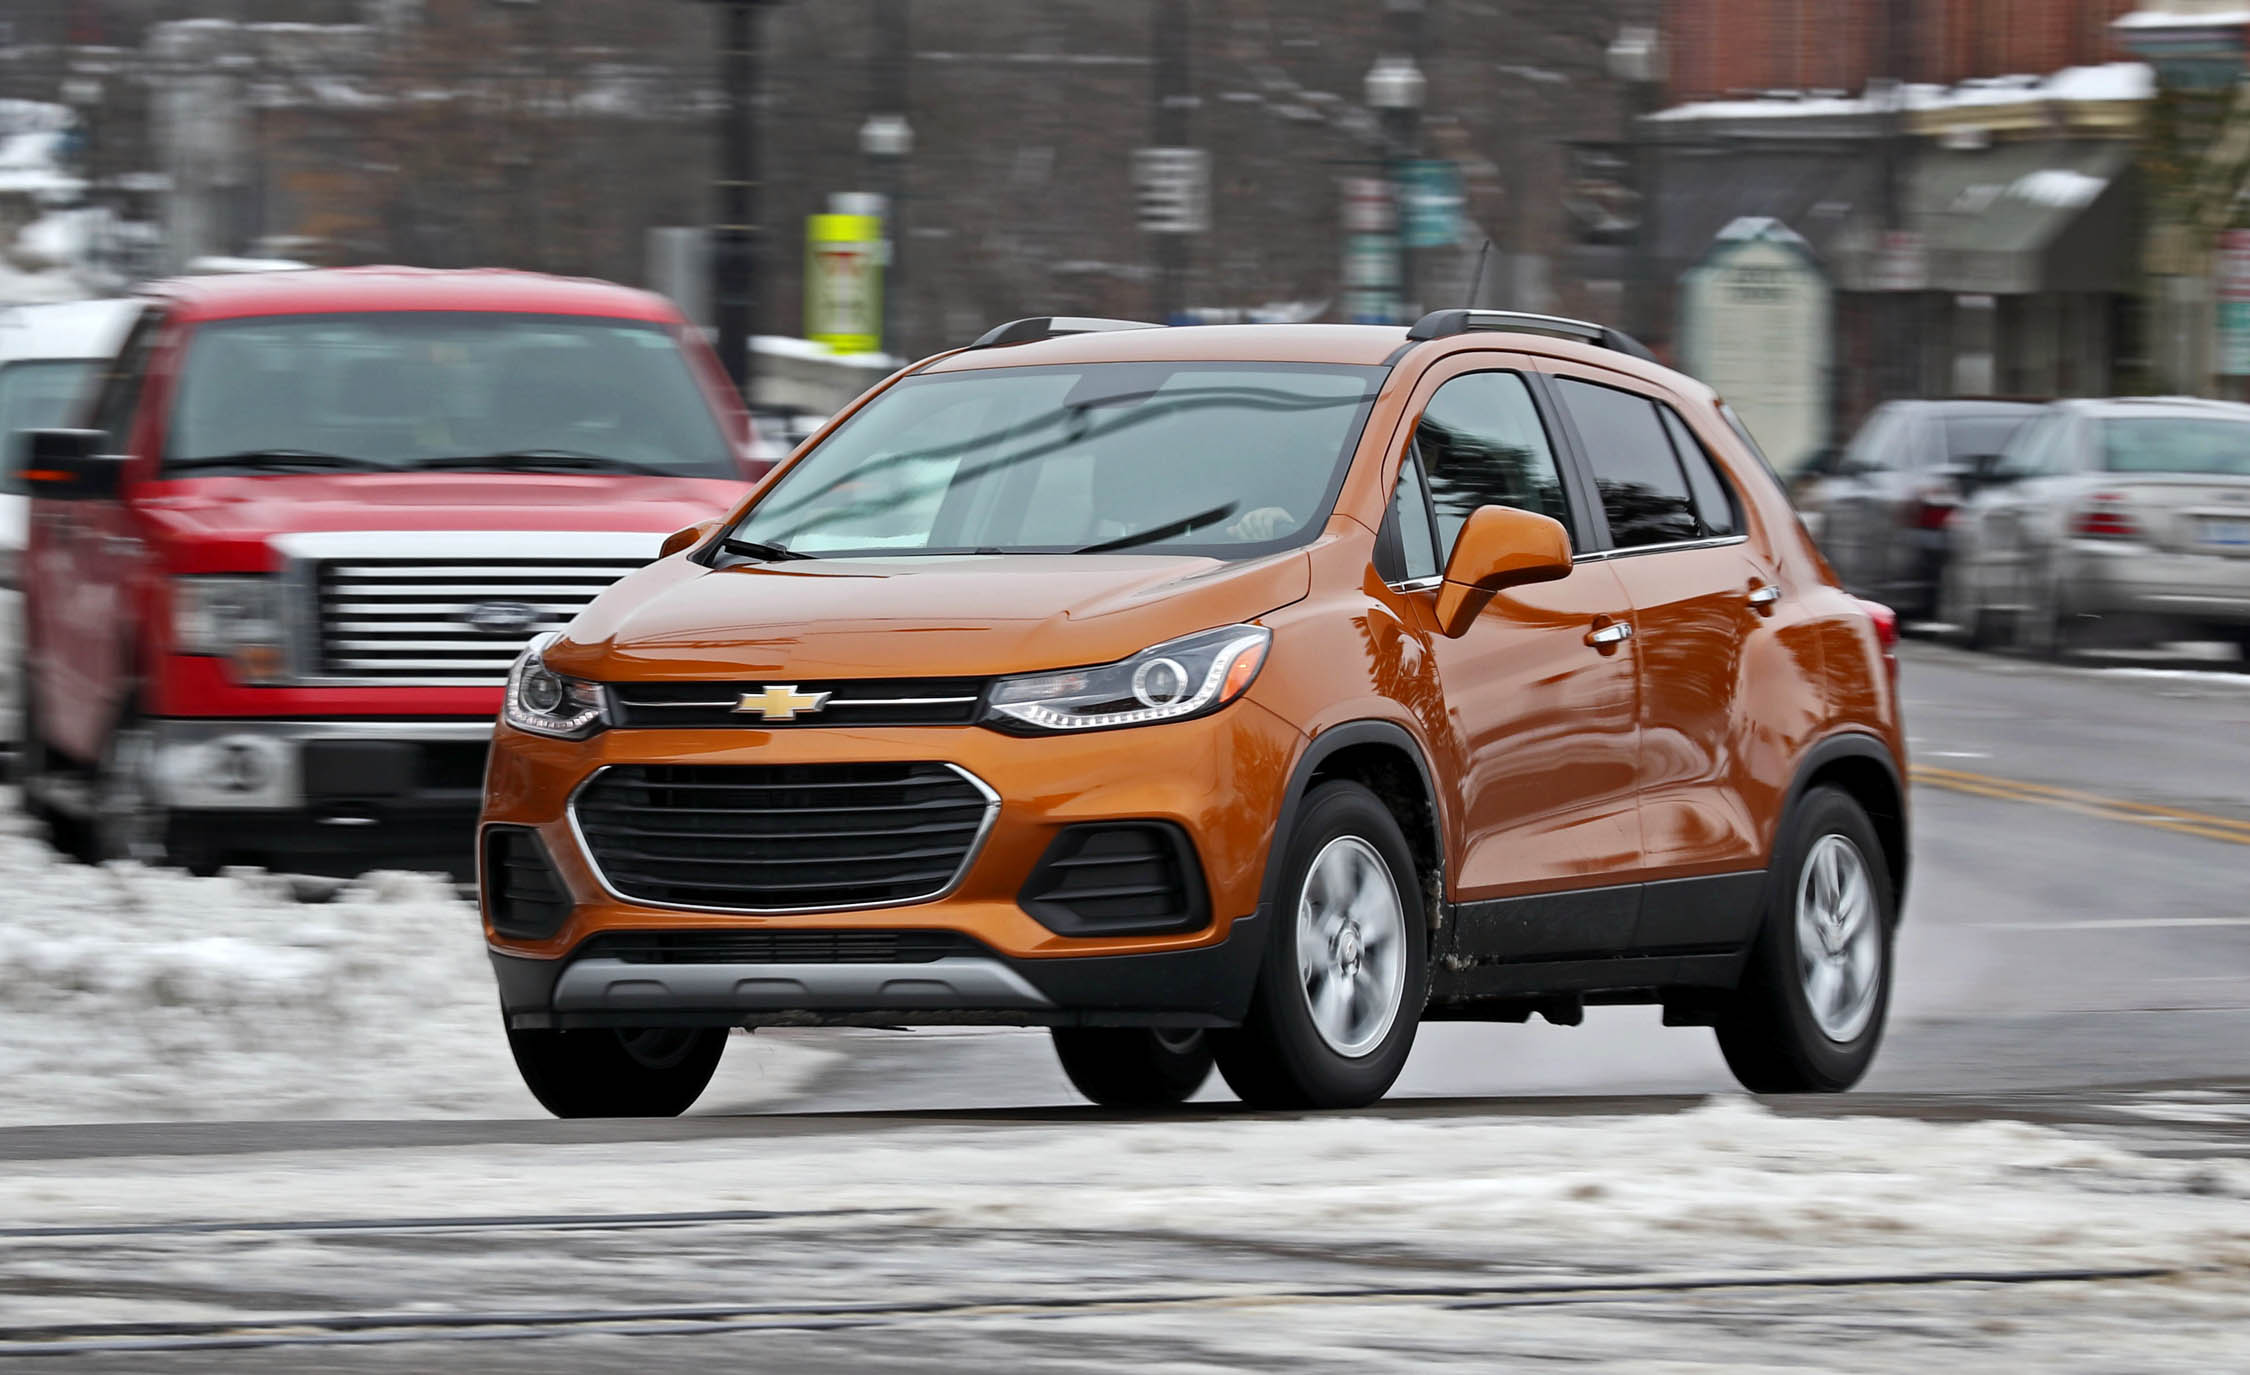 2017 Chevrolet Trax Test Drive (Photo 5 of 47)